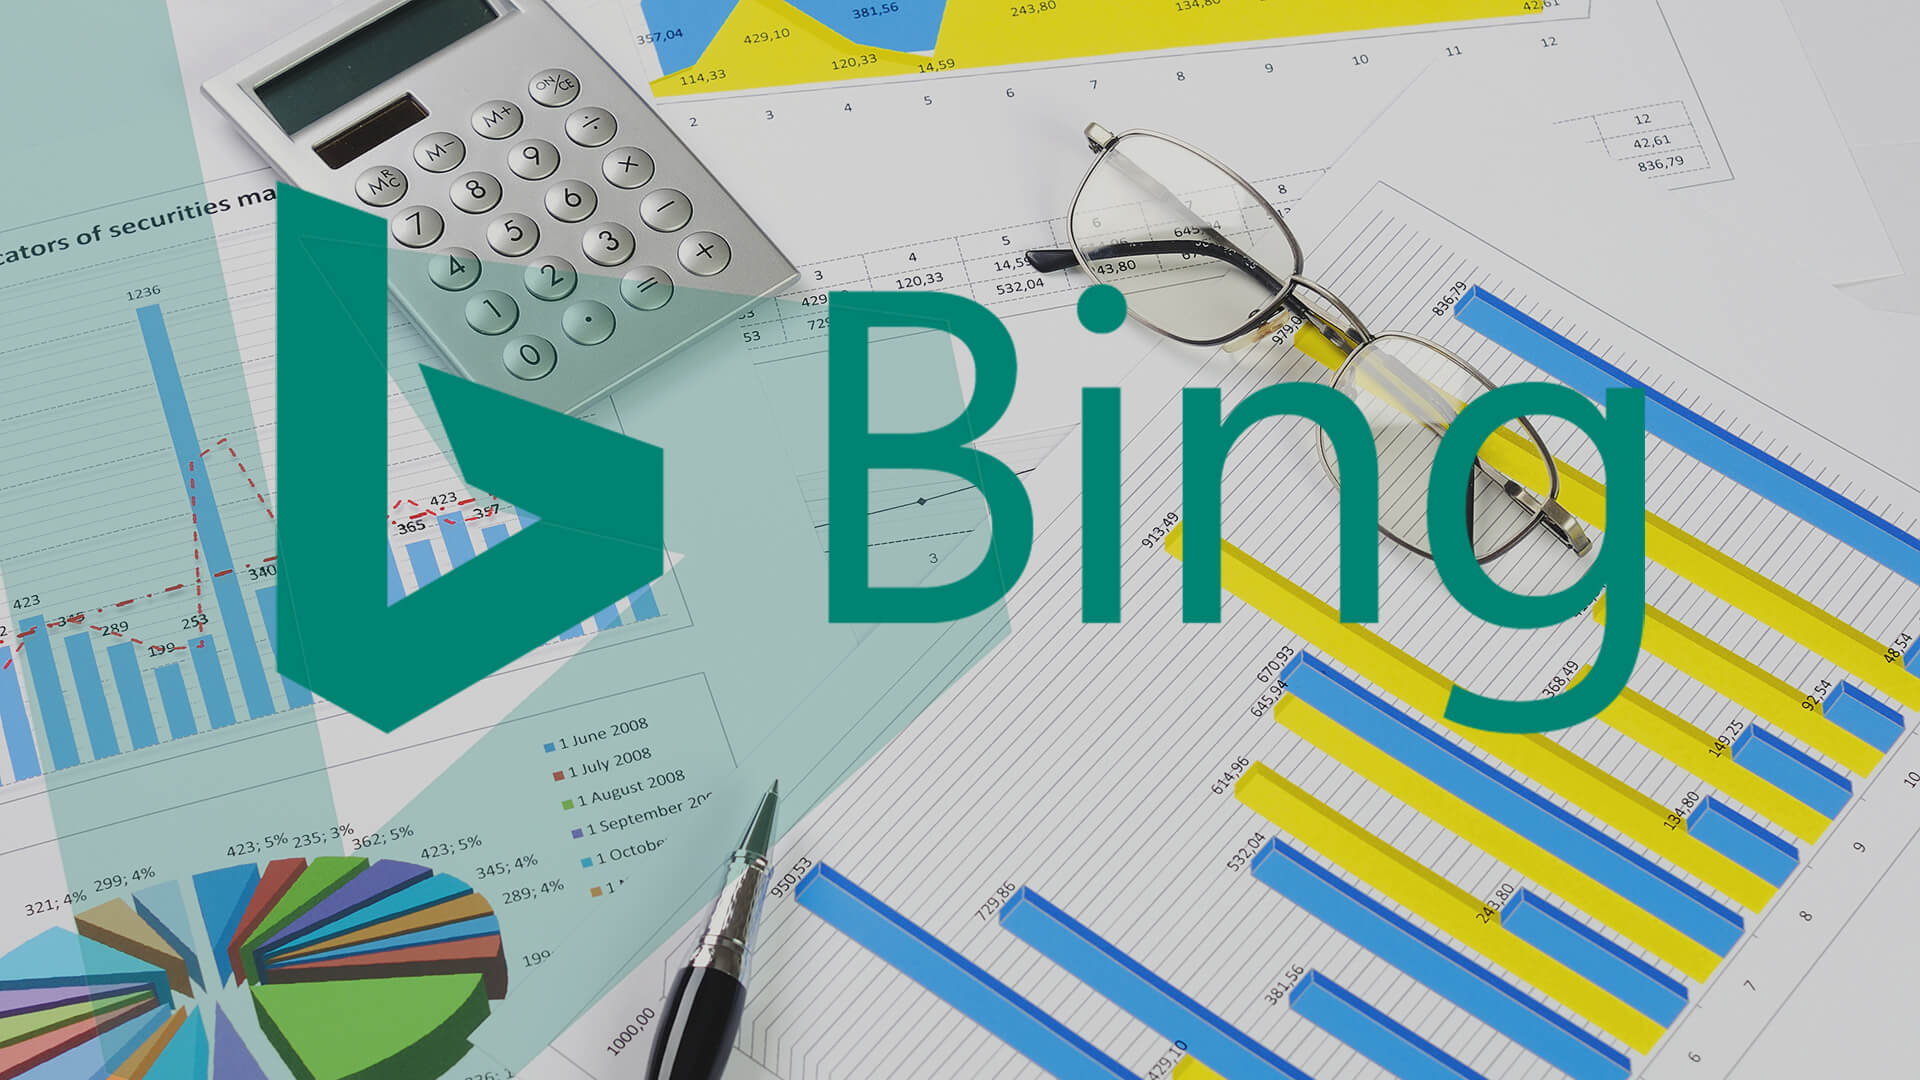 Now Bing Ads Count Conversions Based on the Time of Ad Clicks